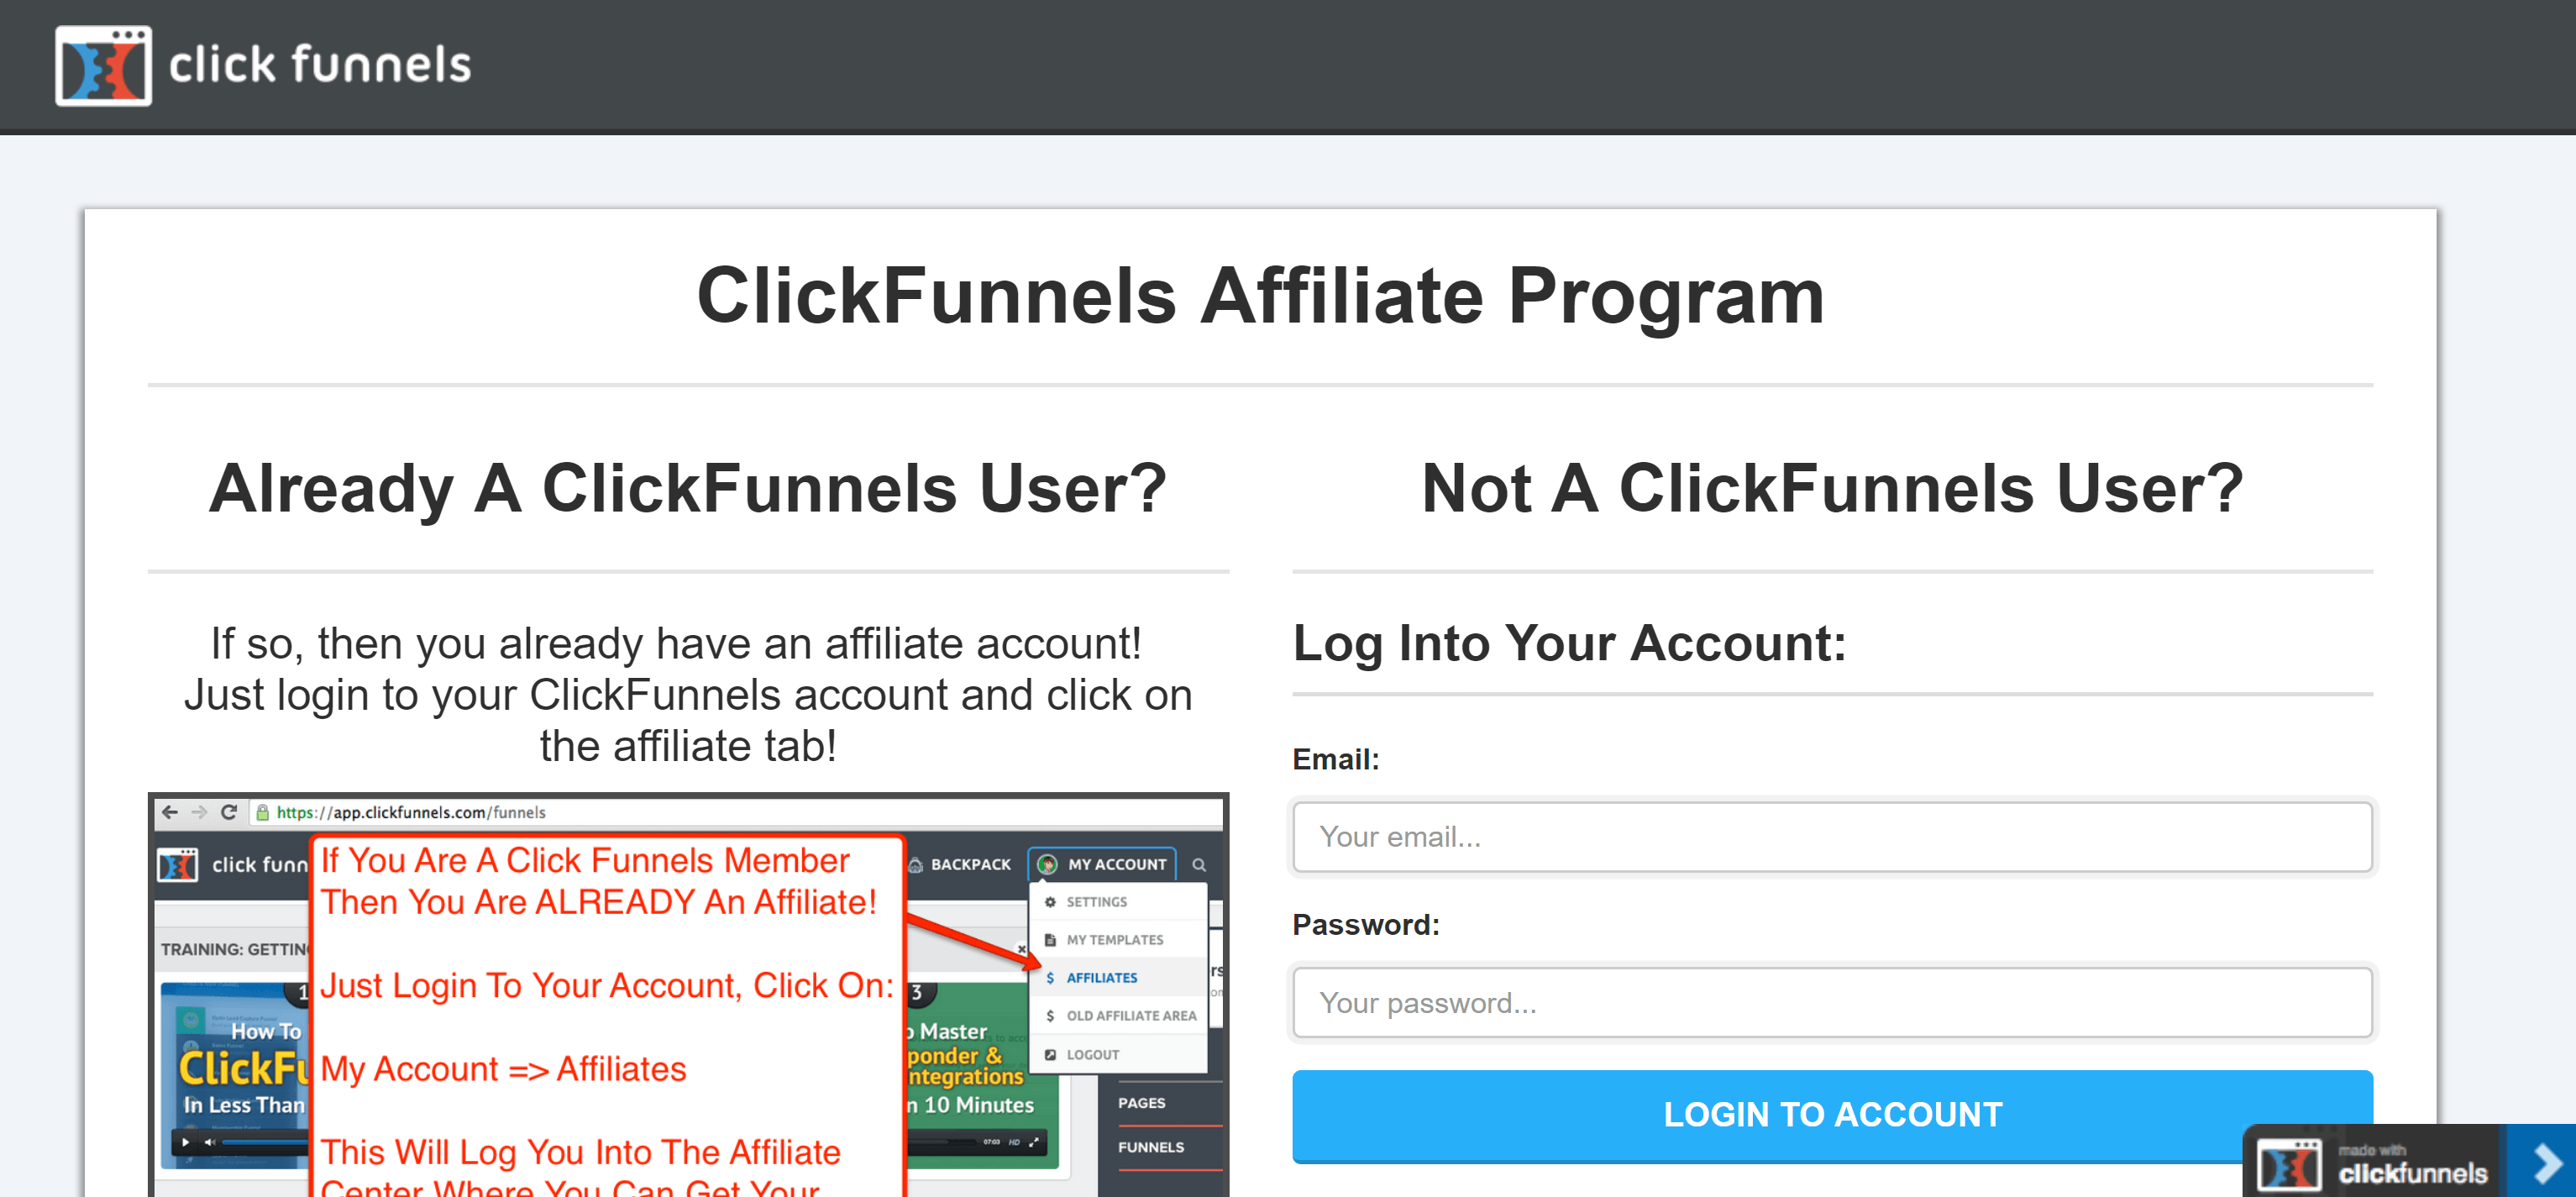 Top Affiliate Programs (2019) - Business of Apps